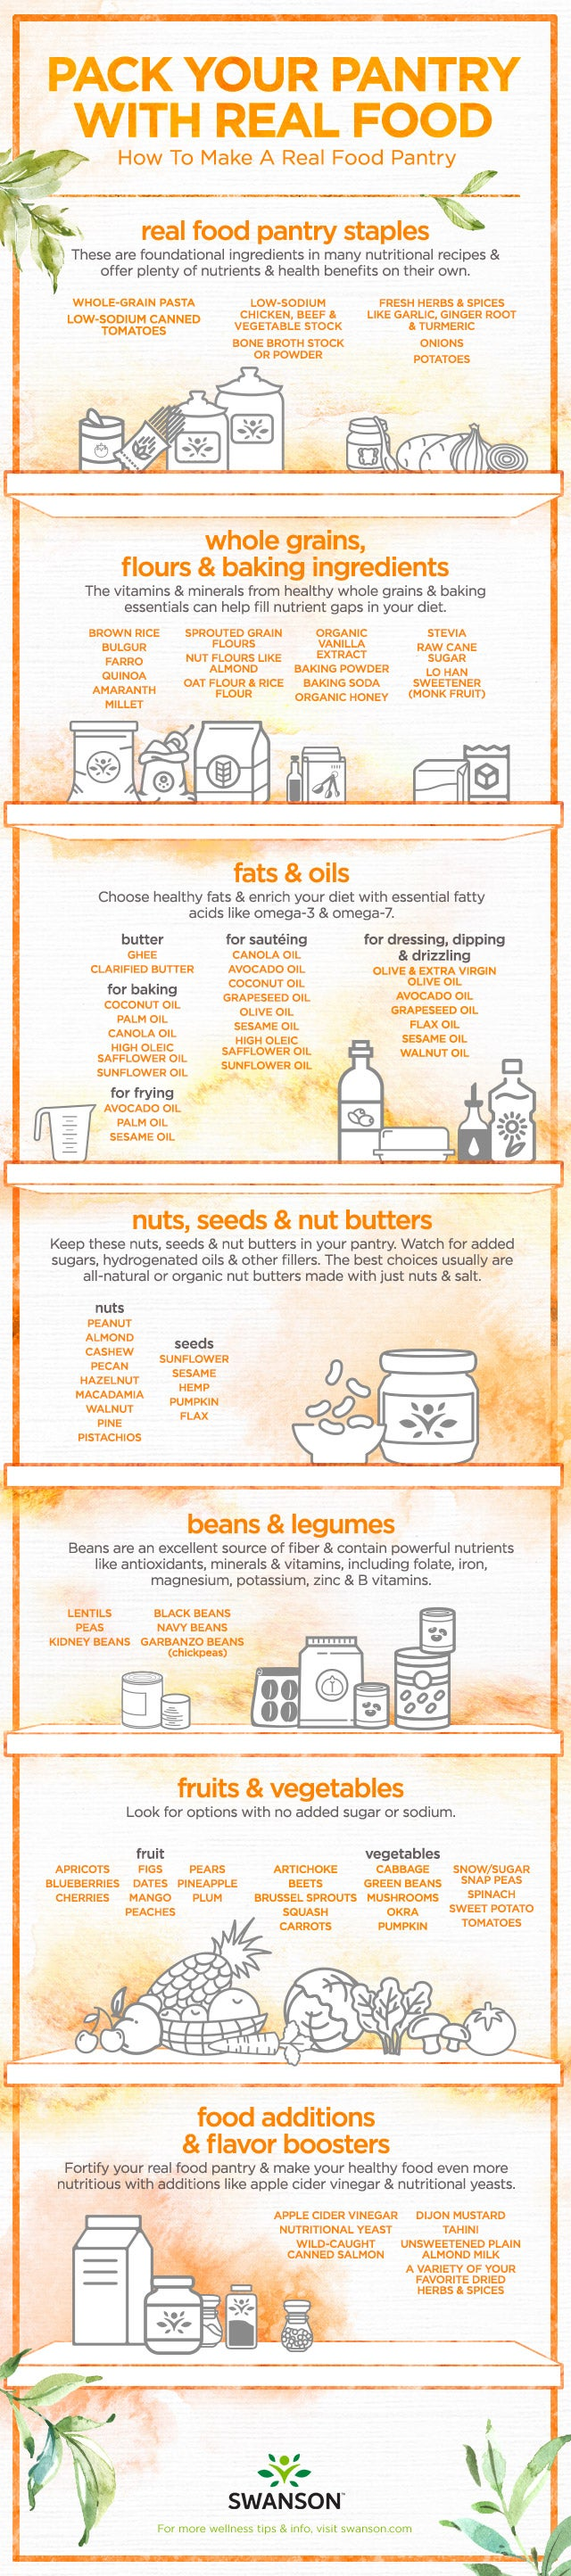 How to Make a Real Food Pantry Infographic by Swanson Health